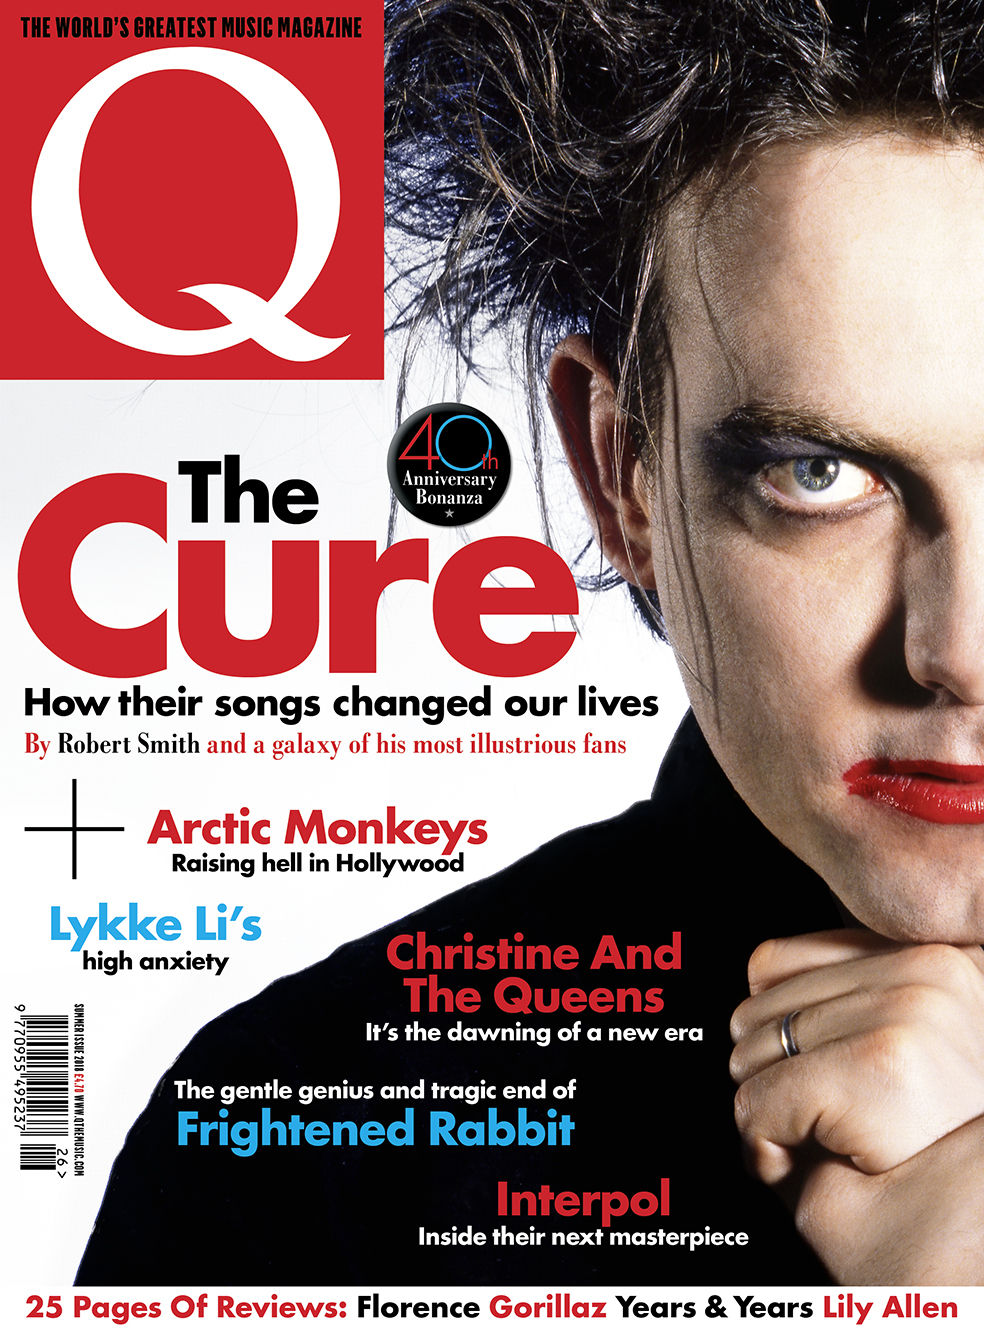 Celebrating The Cure's 40th anniversary in the new issue